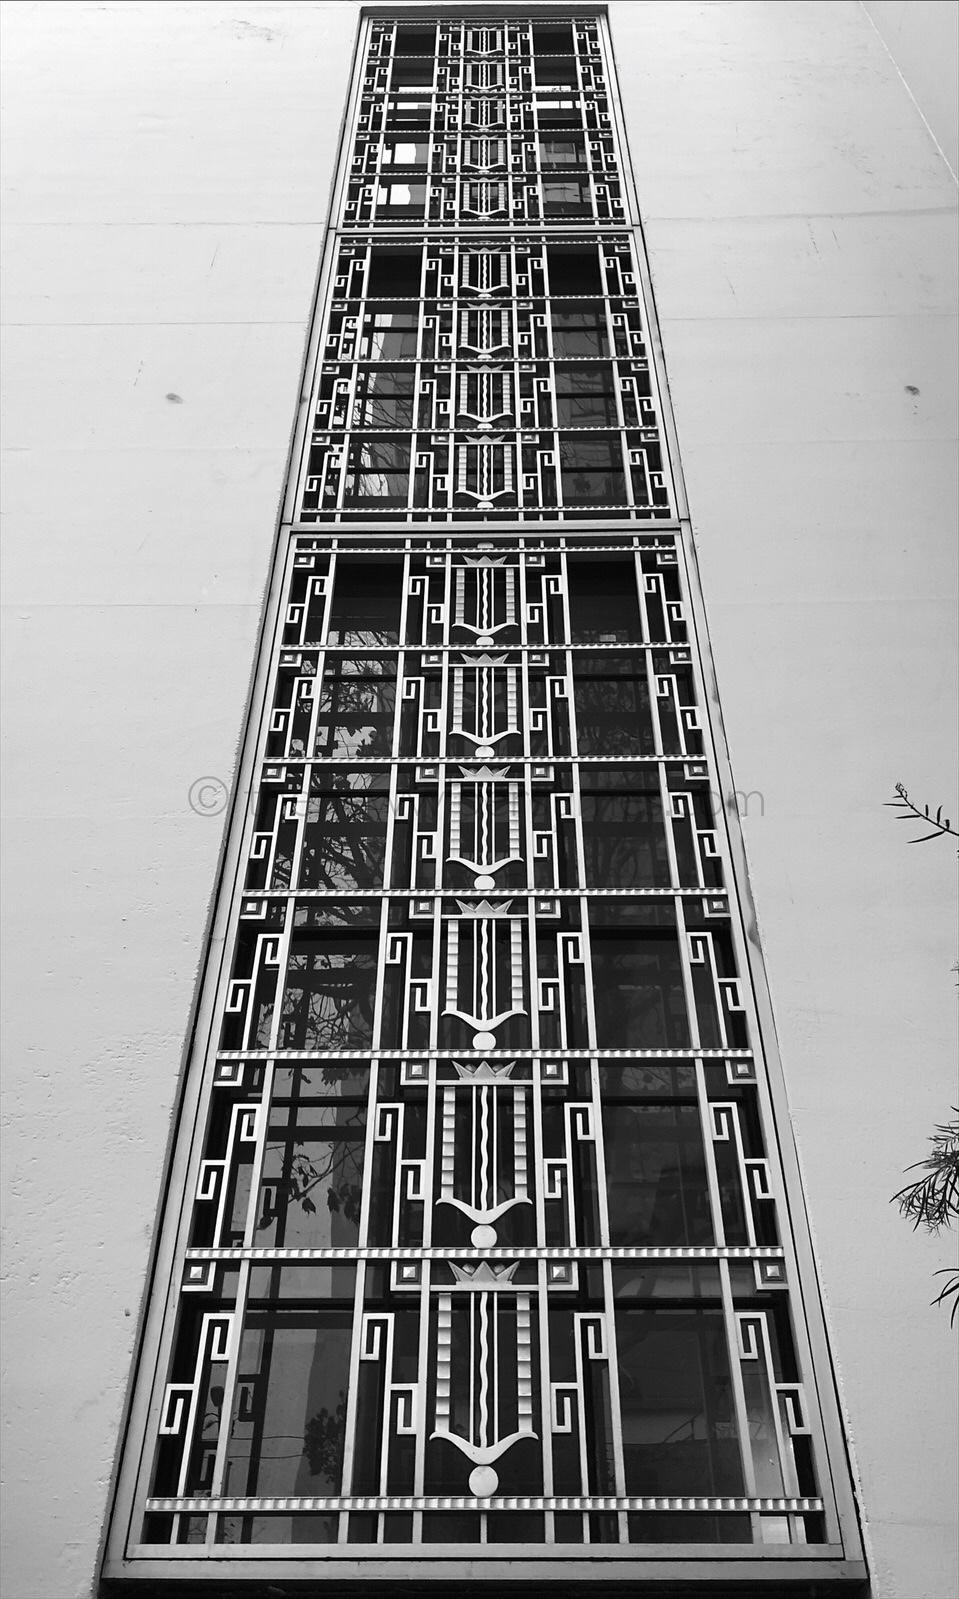 The 'Rincon Annex', 101-199 Mission Street, San Francisco CA. The United States Post Office Building Art Deco Gilbert Stanley Underwood Streamline Moderne Anton Refregier The History of California